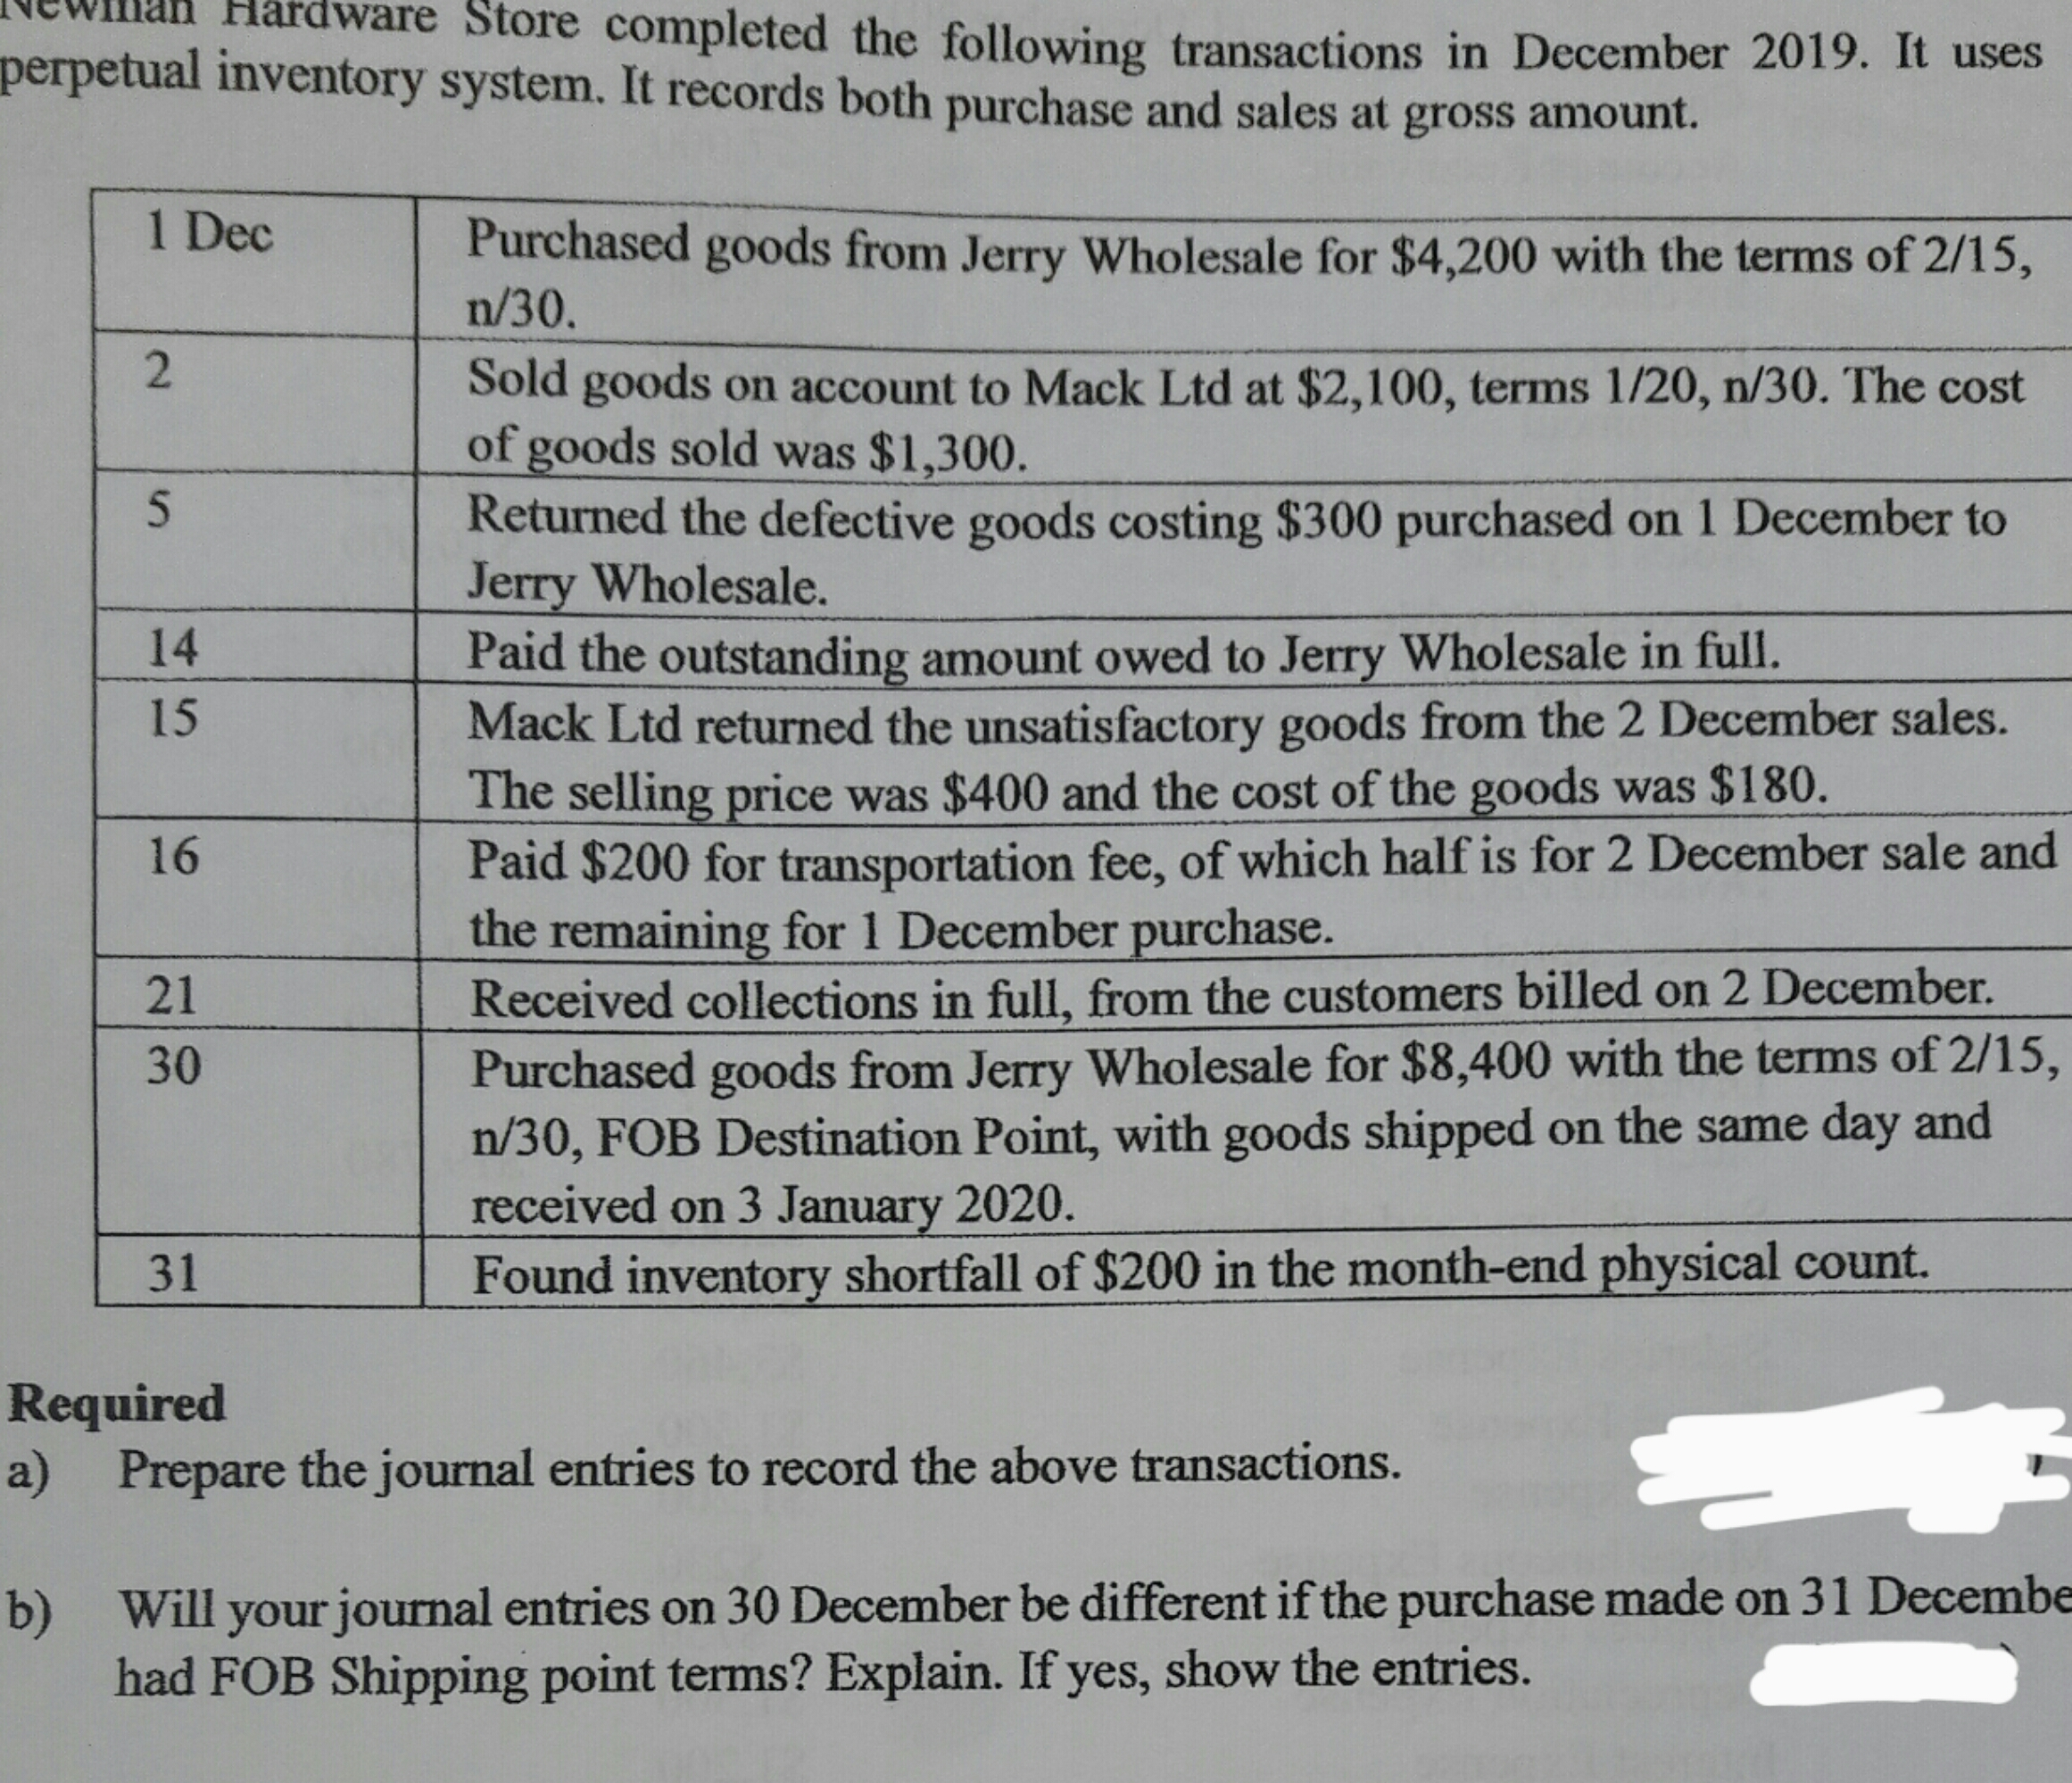 Hardware Store completed the following transactions in December 2019. It uses perpetual inventory system. It records both purchase and sales at gross amount. 1 Dec Purchased goods from Jerry Wholesale for $4,200 with the terms of 2/15, n/30. Sold goods on account to Mack Ltd at $2,100, terms 1/20, n/30. The cost of goods sold was $1,300. Returned the defective goods costing $300 purchased on 1 December to Jerry Wholesale. Paid the outstanding amount owed to Jerry Wholesale in full. Mack Ltd returned the unsatisfactory goods from the 2 December sales. The selling price was $400 and the cost of the goods was $180. Paid $200 for transportation fee, of which half is for 2 December sale and the remaining for 1 December purchase. 14 15 16 Received collections in full, from the customers billed on 2 December. Purchased goods from Jerry Wholesale for $8,400 with the terms of 2/15, n/30, FOB Destination Point, with goods shipped on the same day and received on 3 January 2020. Found inventory shortfall of $200 in the month-end physical count. 21 30 31 Required a) Prepare the journal entries to record the above transactions. b) Will your journal entries on 30 December be different if the purchase made on 31 Decembe had FOB Shipping point terms? Explain. If yes, show the entries. 2.